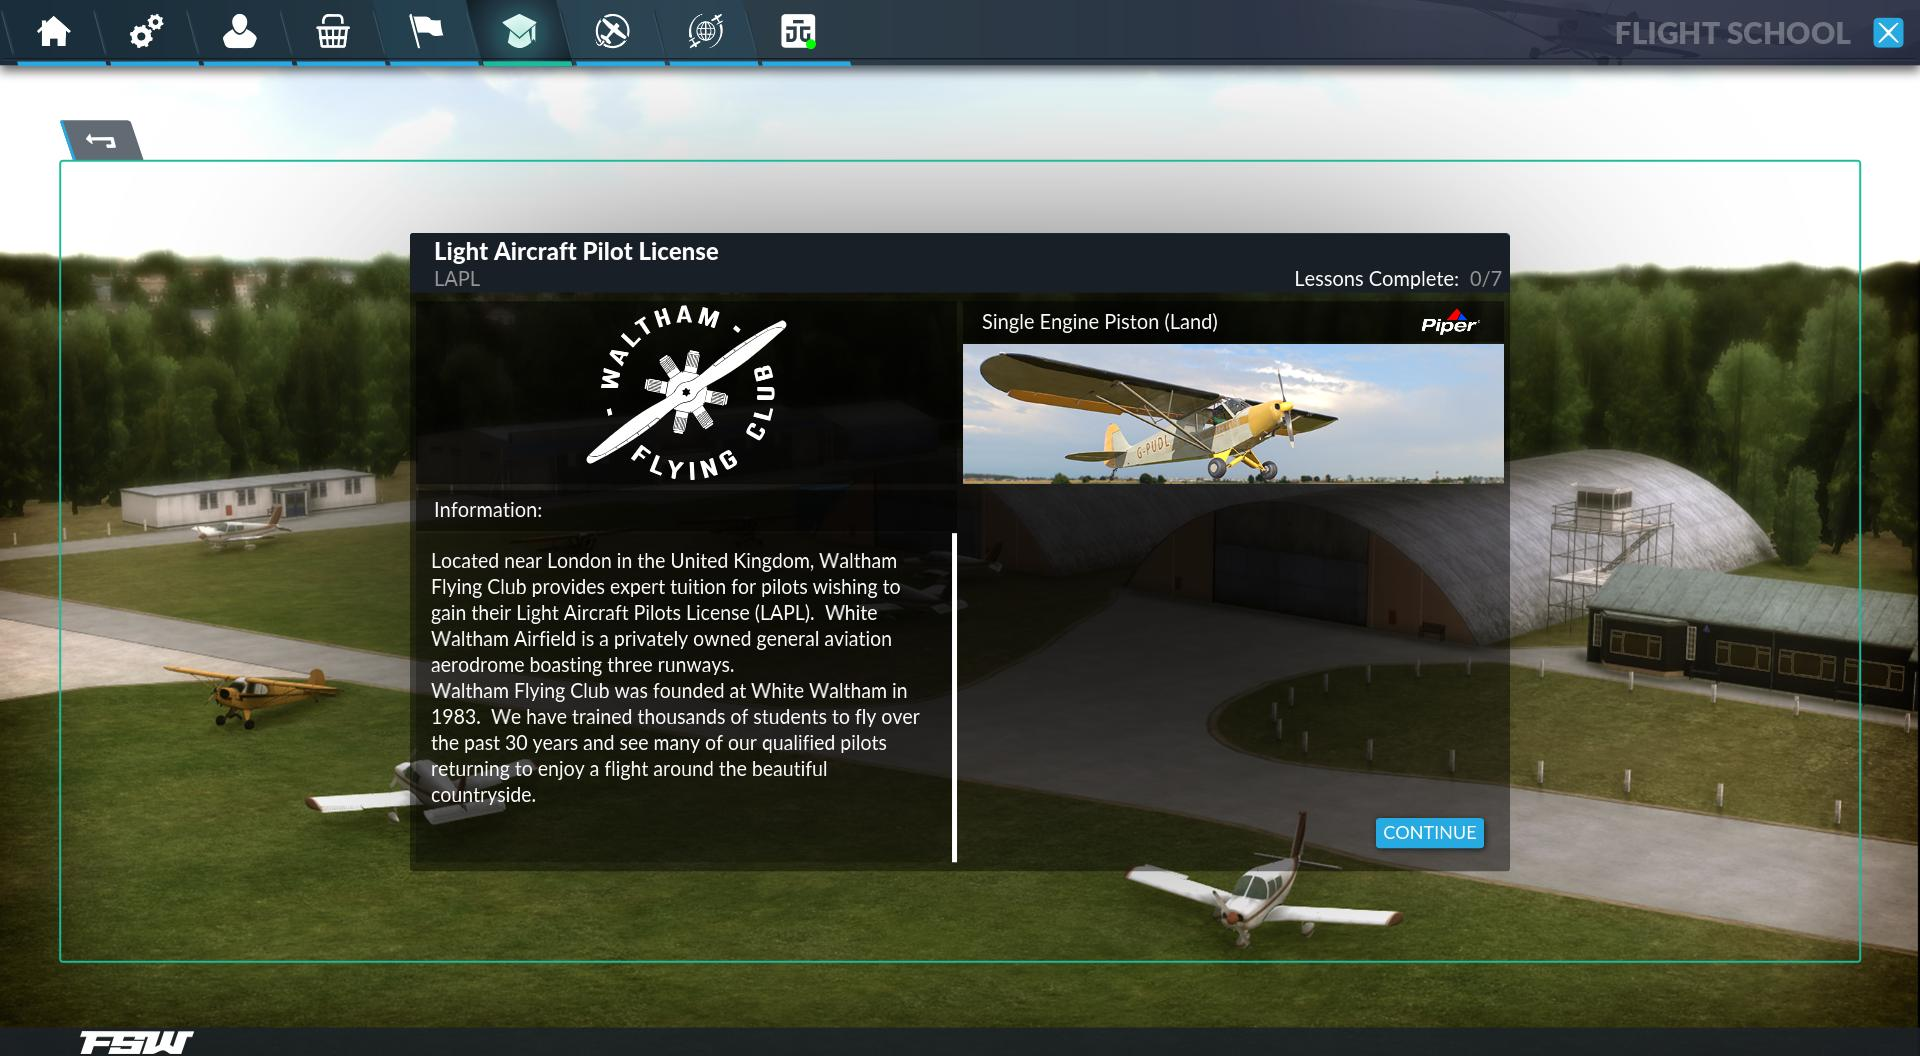 Dovetail games flight school manual - Learning To Fly Is Simple Pilot Training Progress